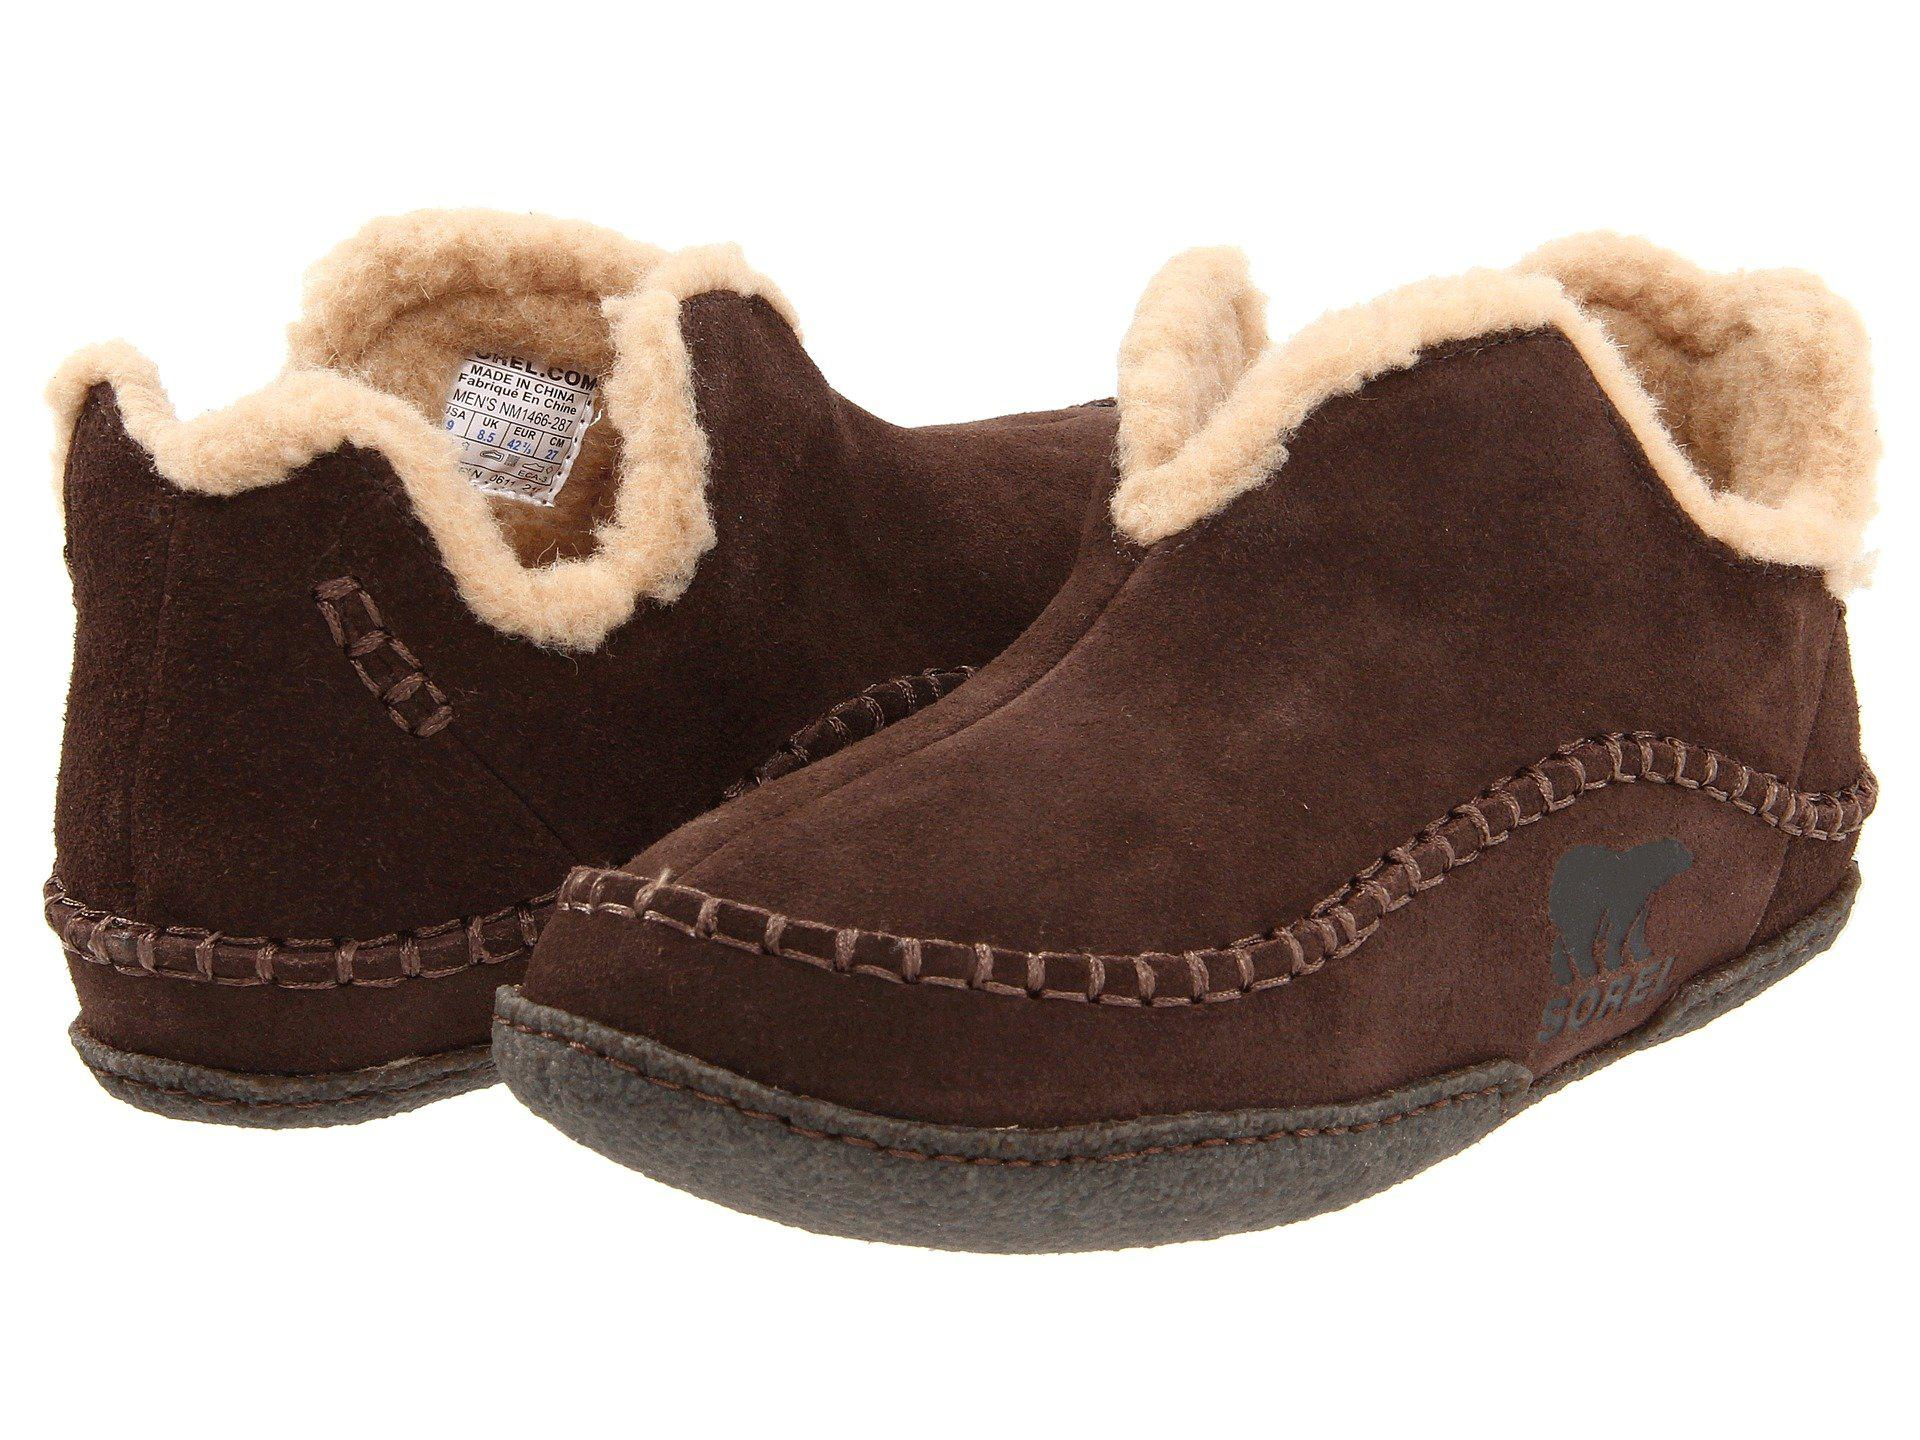 8f634fcb6687 Sorel Manawan Slippers Uk - Image Skirt and Slipper Imagepv.co